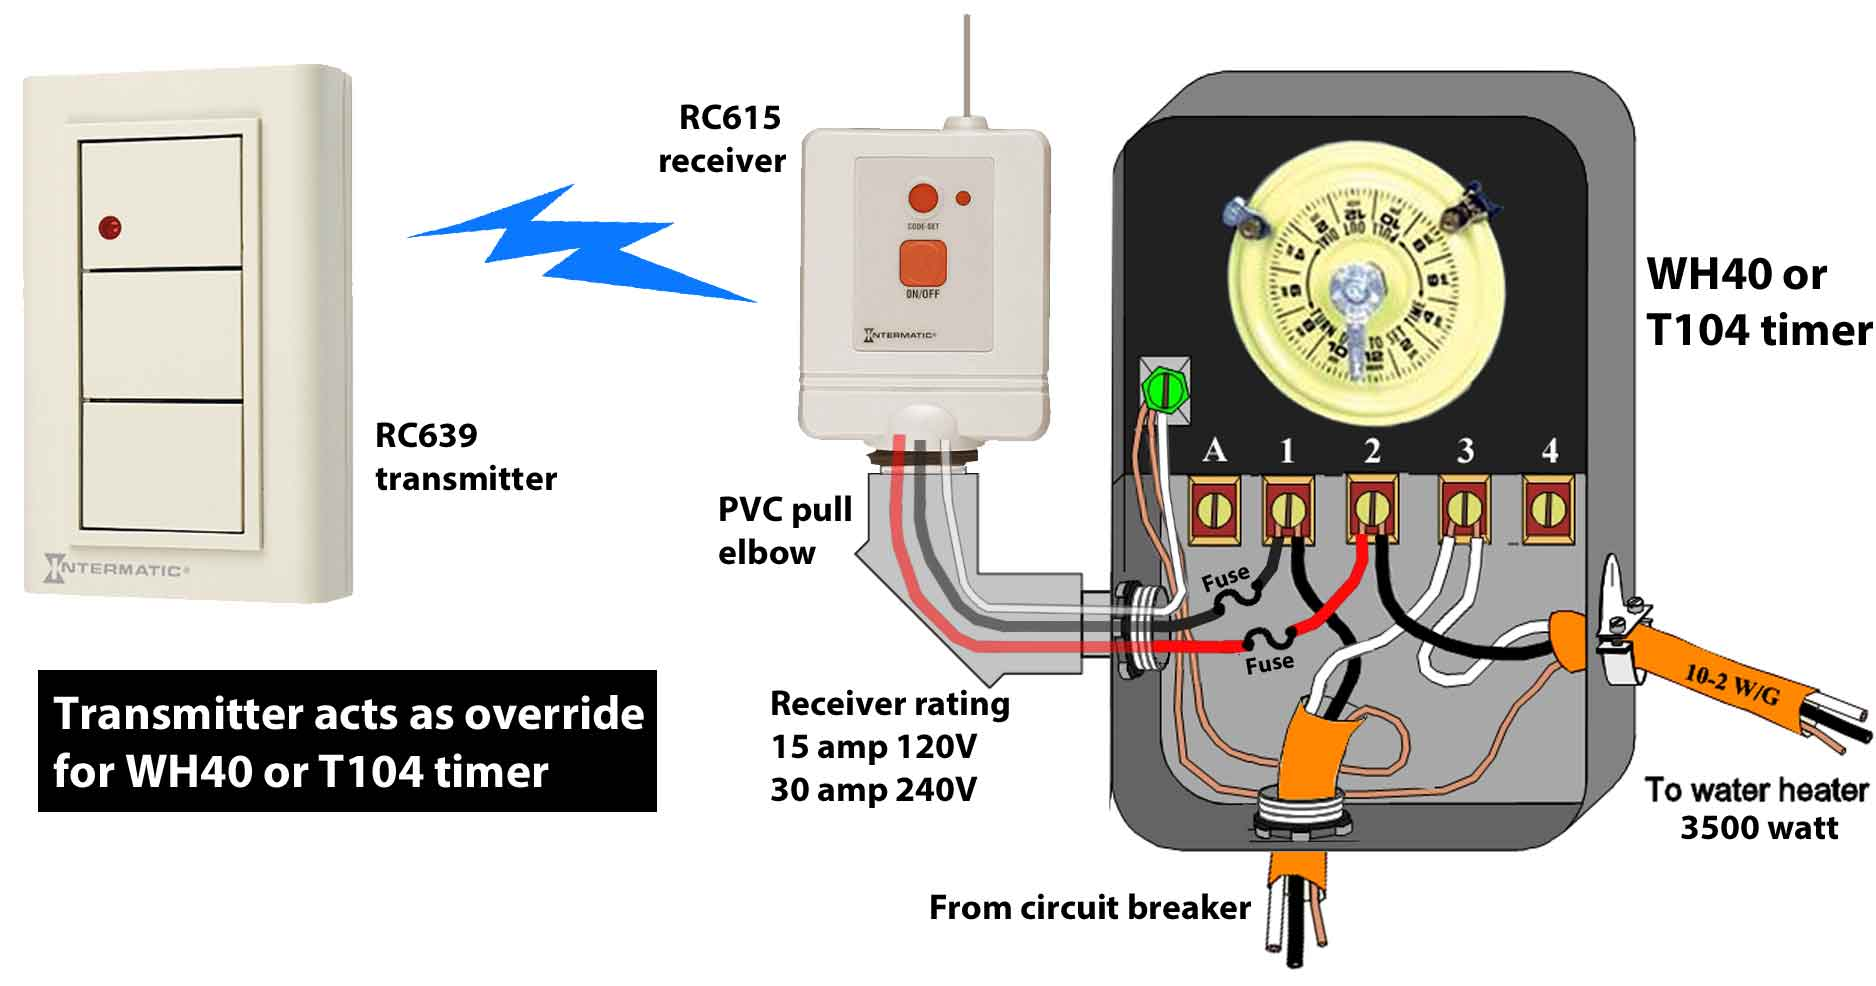 Intermatic remote RC control how to wire wh40 water heater timer timer switch wiring diagram at panicattacktreatment.co